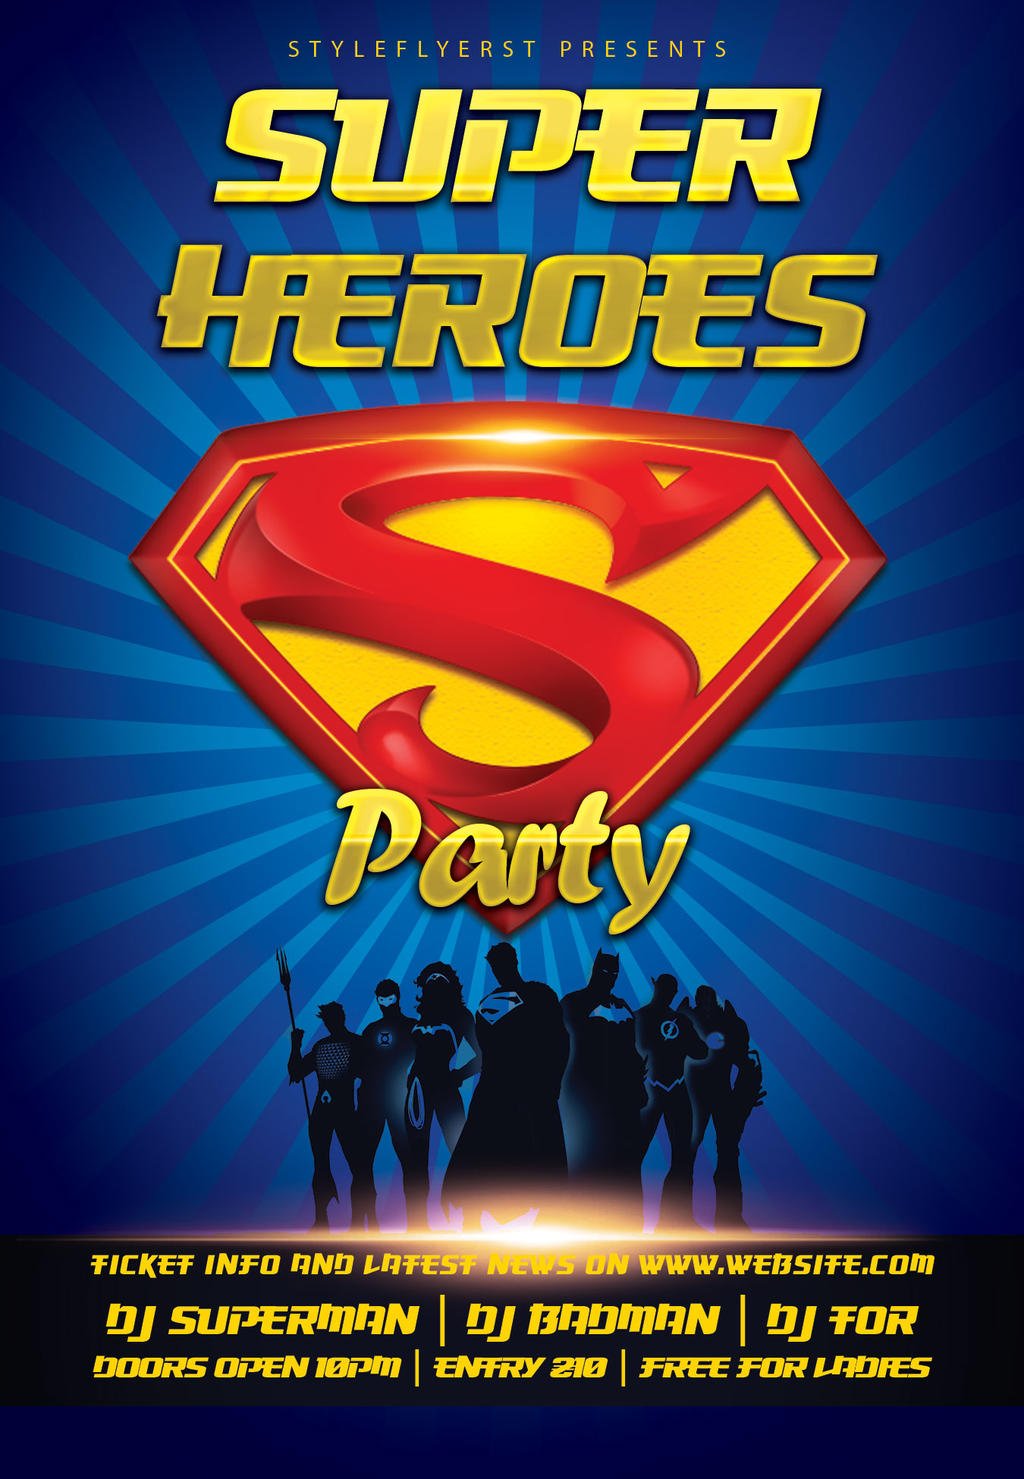 Superheroes-party-flyer by Styleflyers on DeviantArt